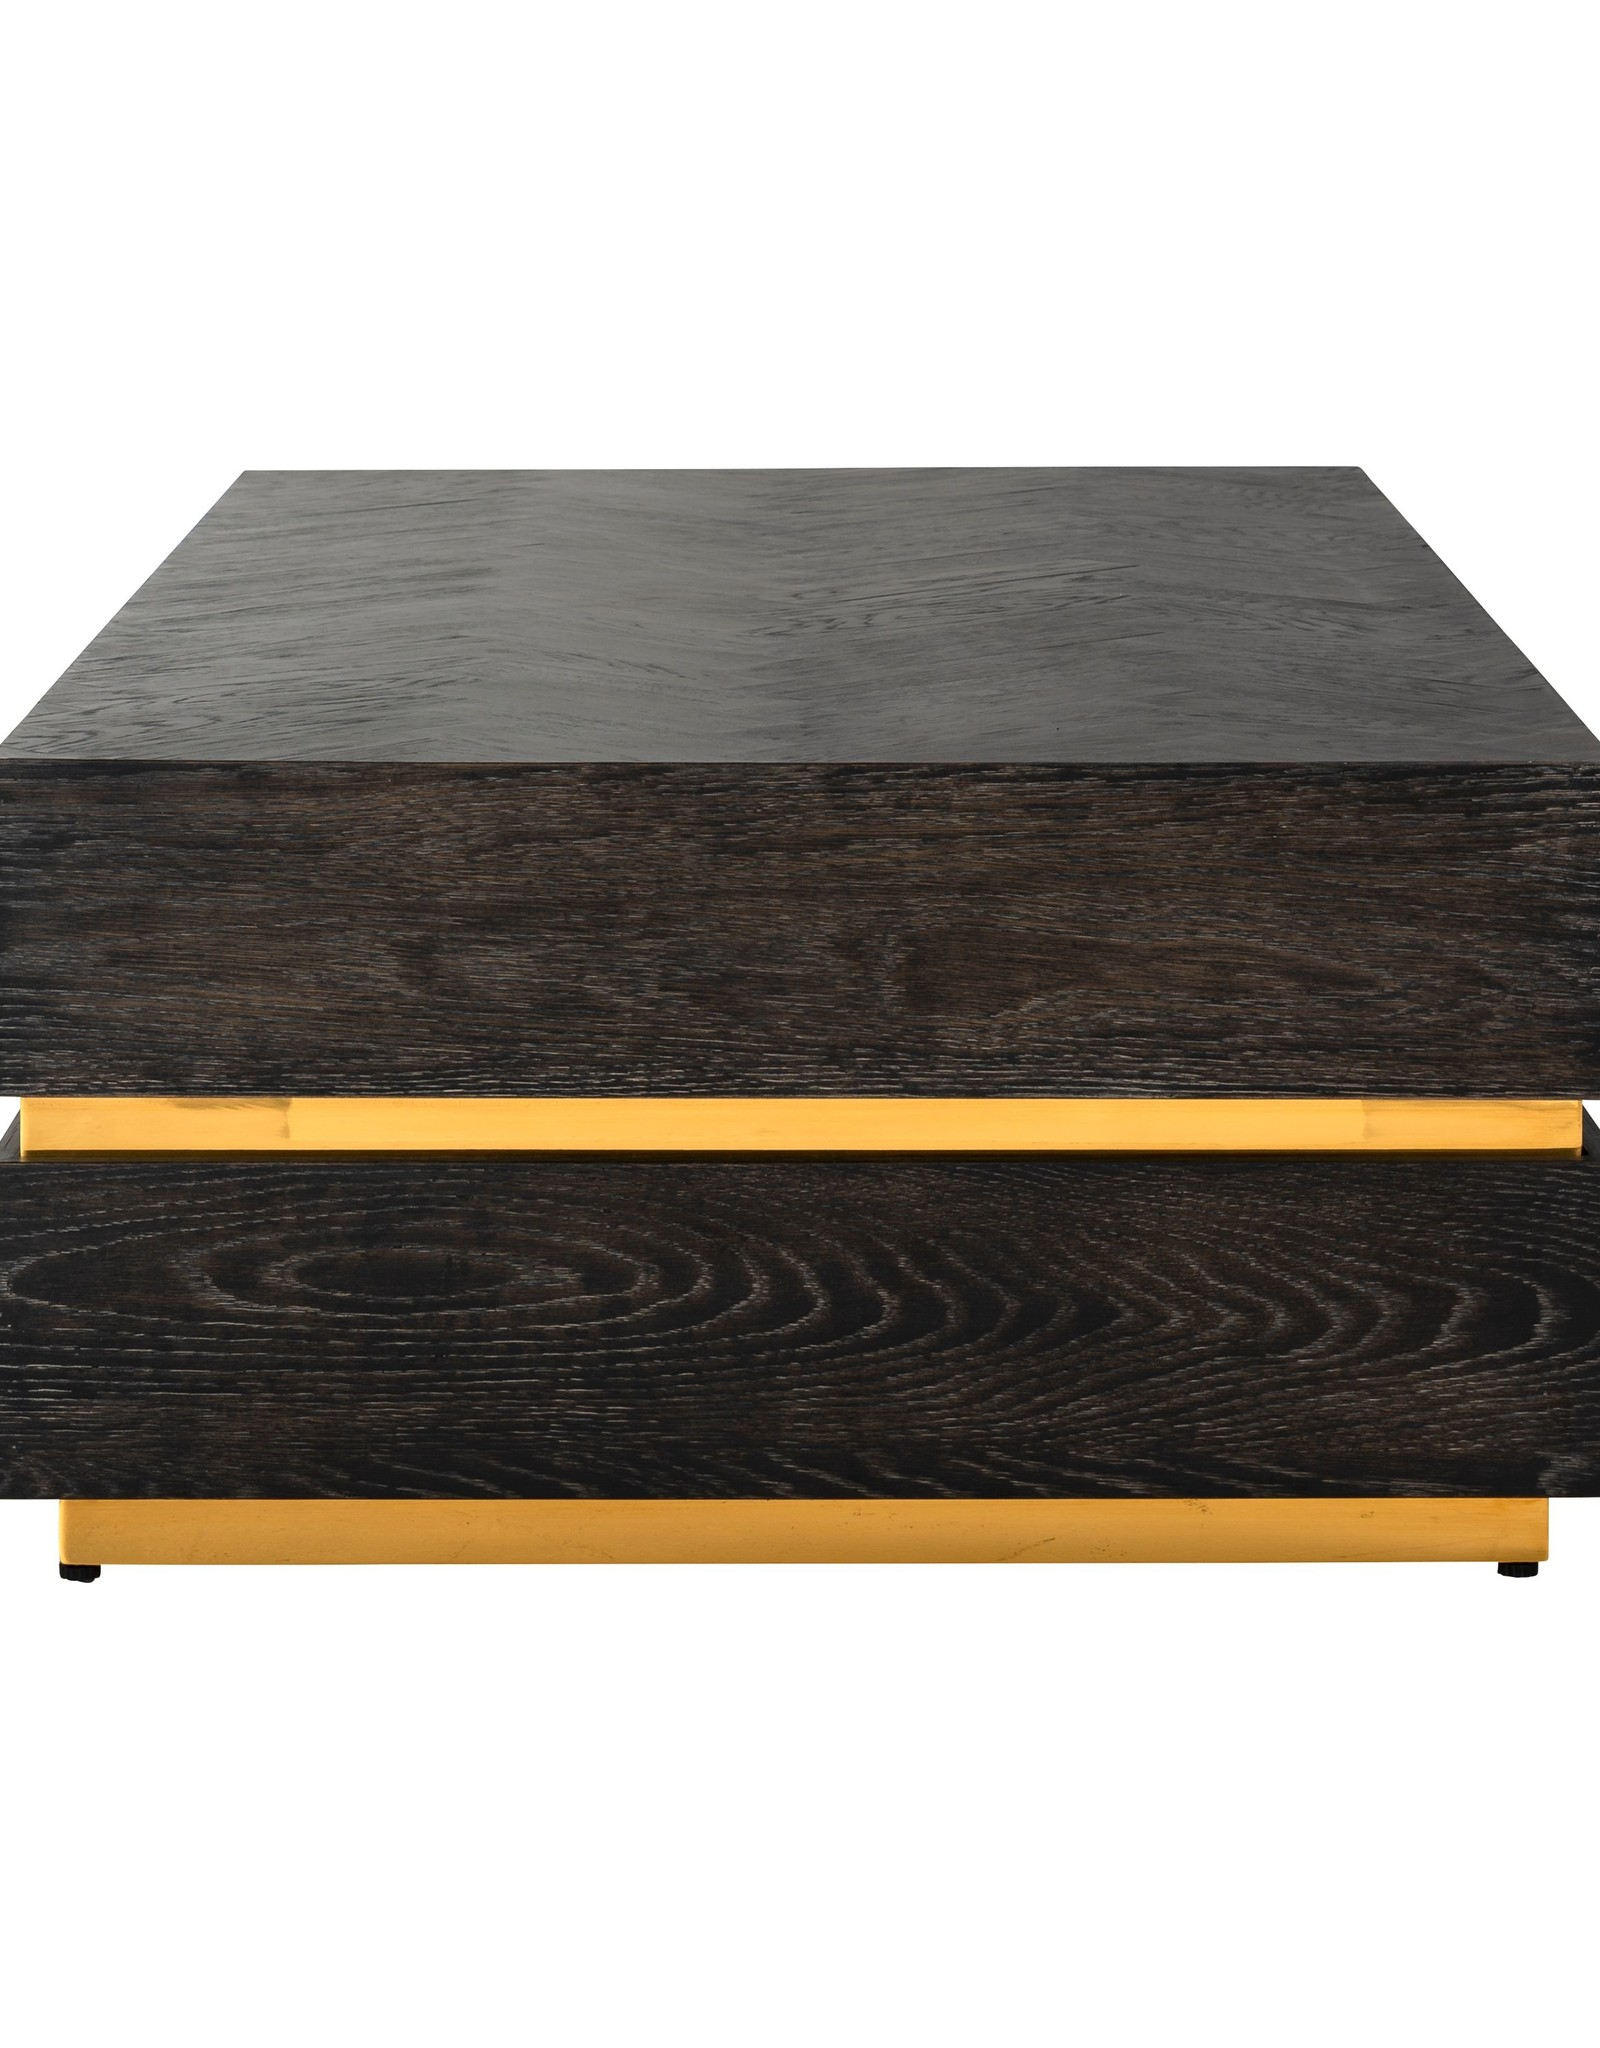 Richmond Interiors Salontafel Blackbone gold 150x80